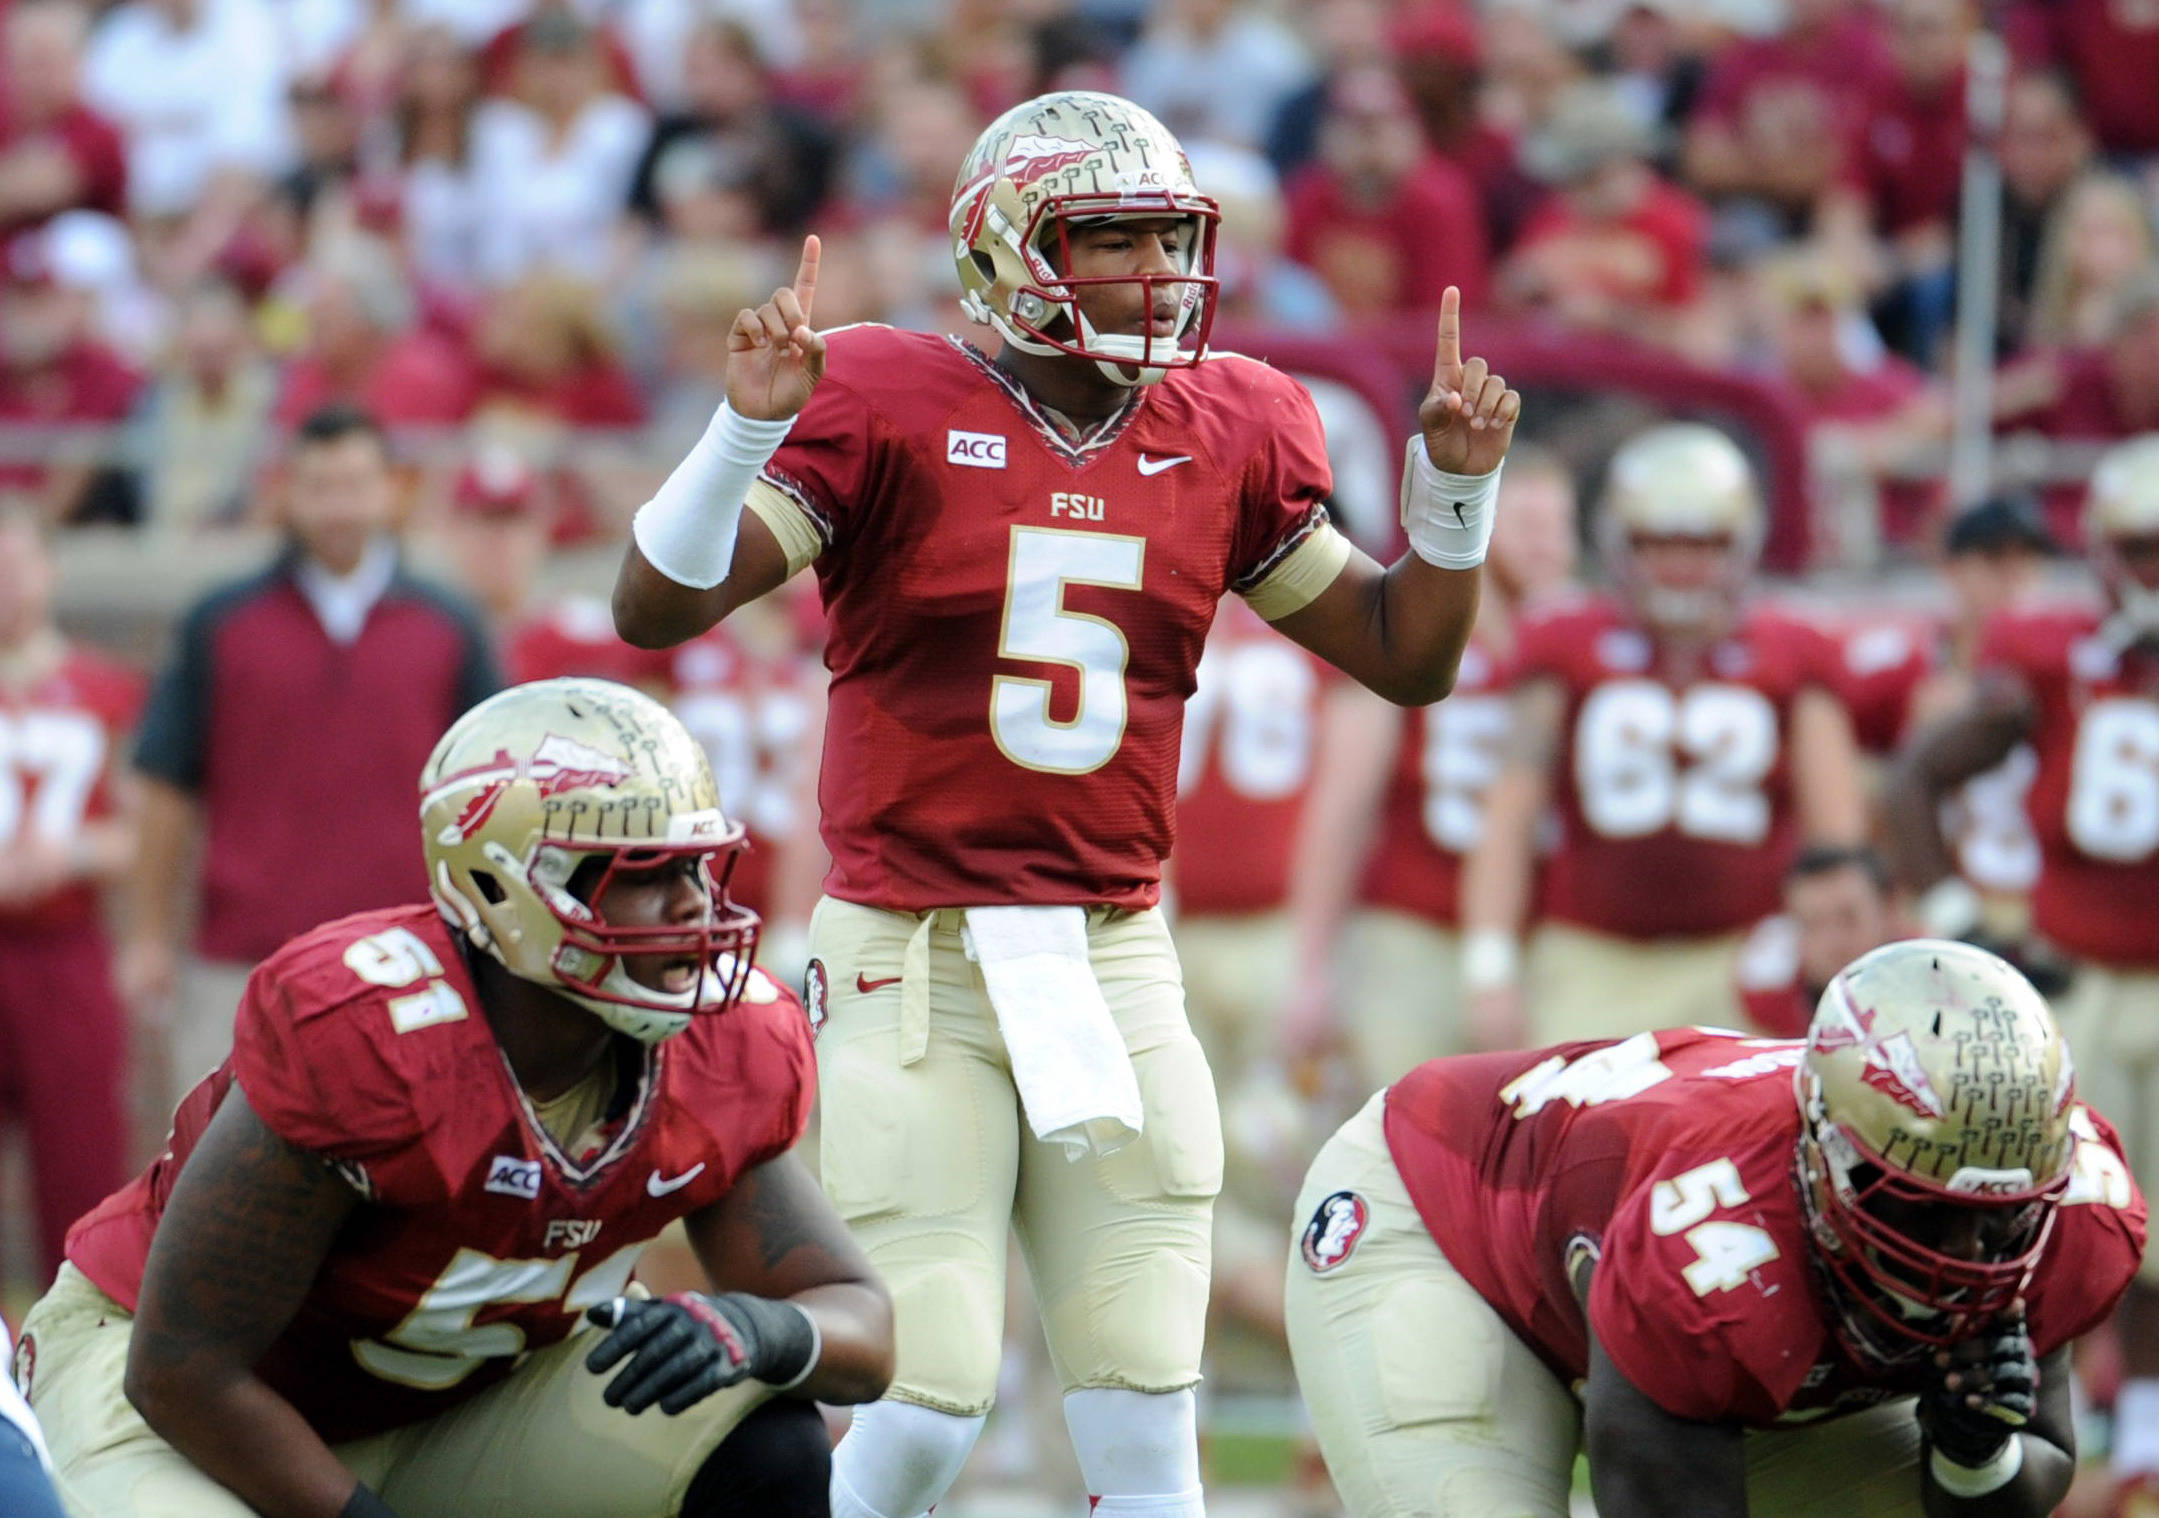 Jameis Winston (5) signals an audible during the first half. Mandatory Credit: Melina Vastola-USA TODAY Sports